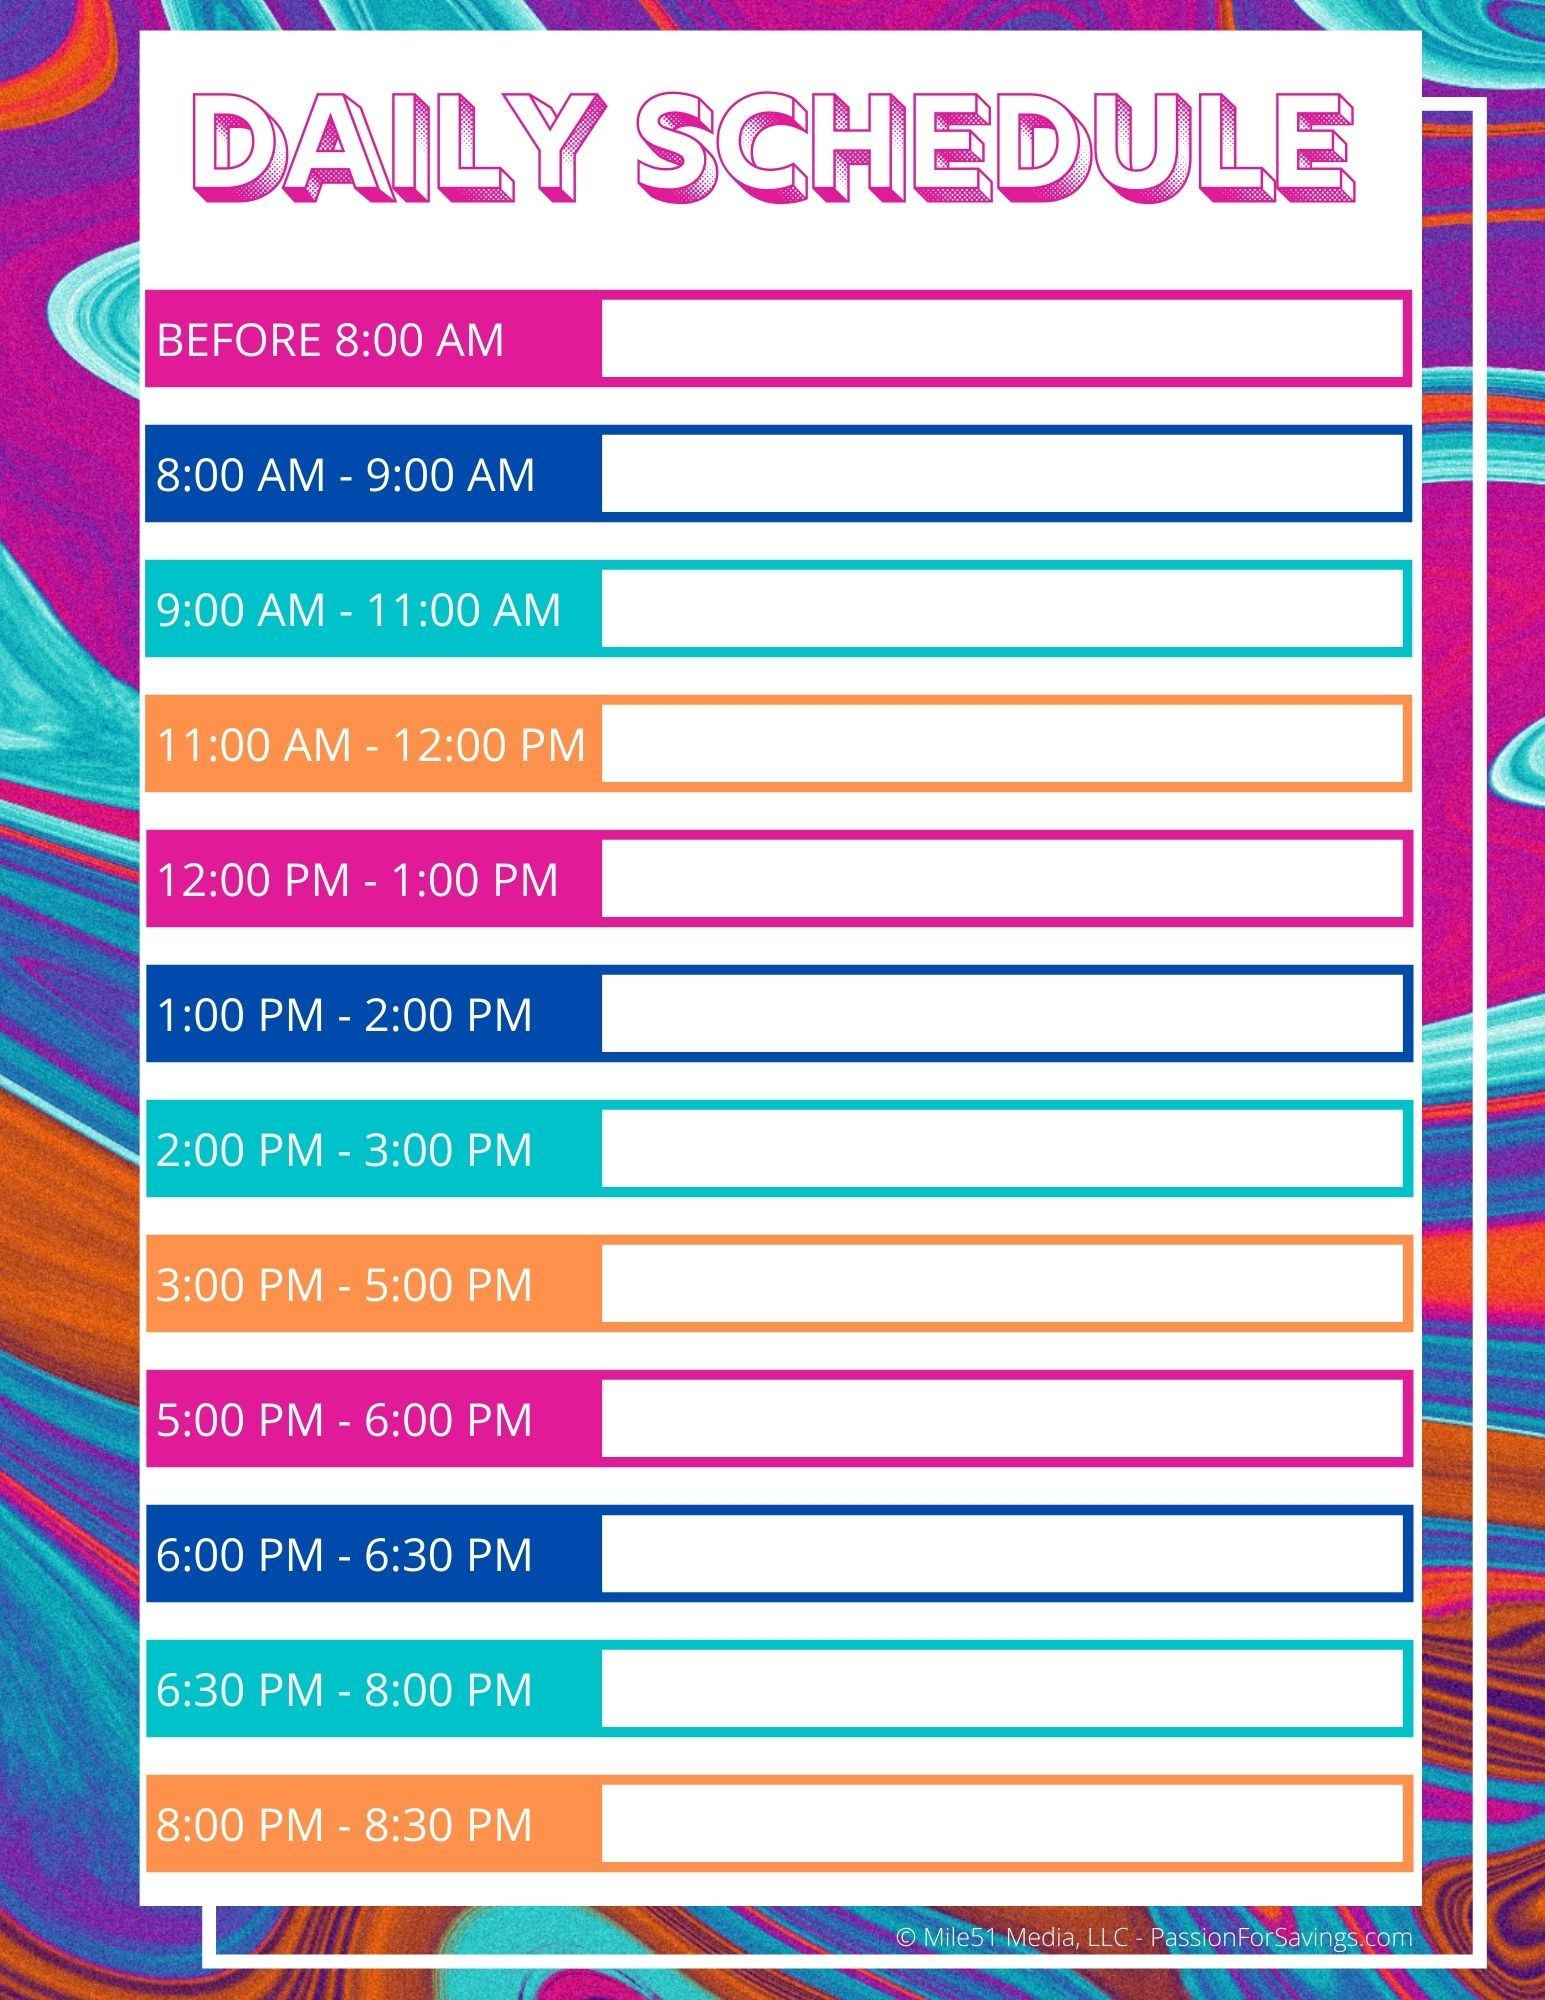 Daily Schedule For Kids While They Are All Home Right Now!